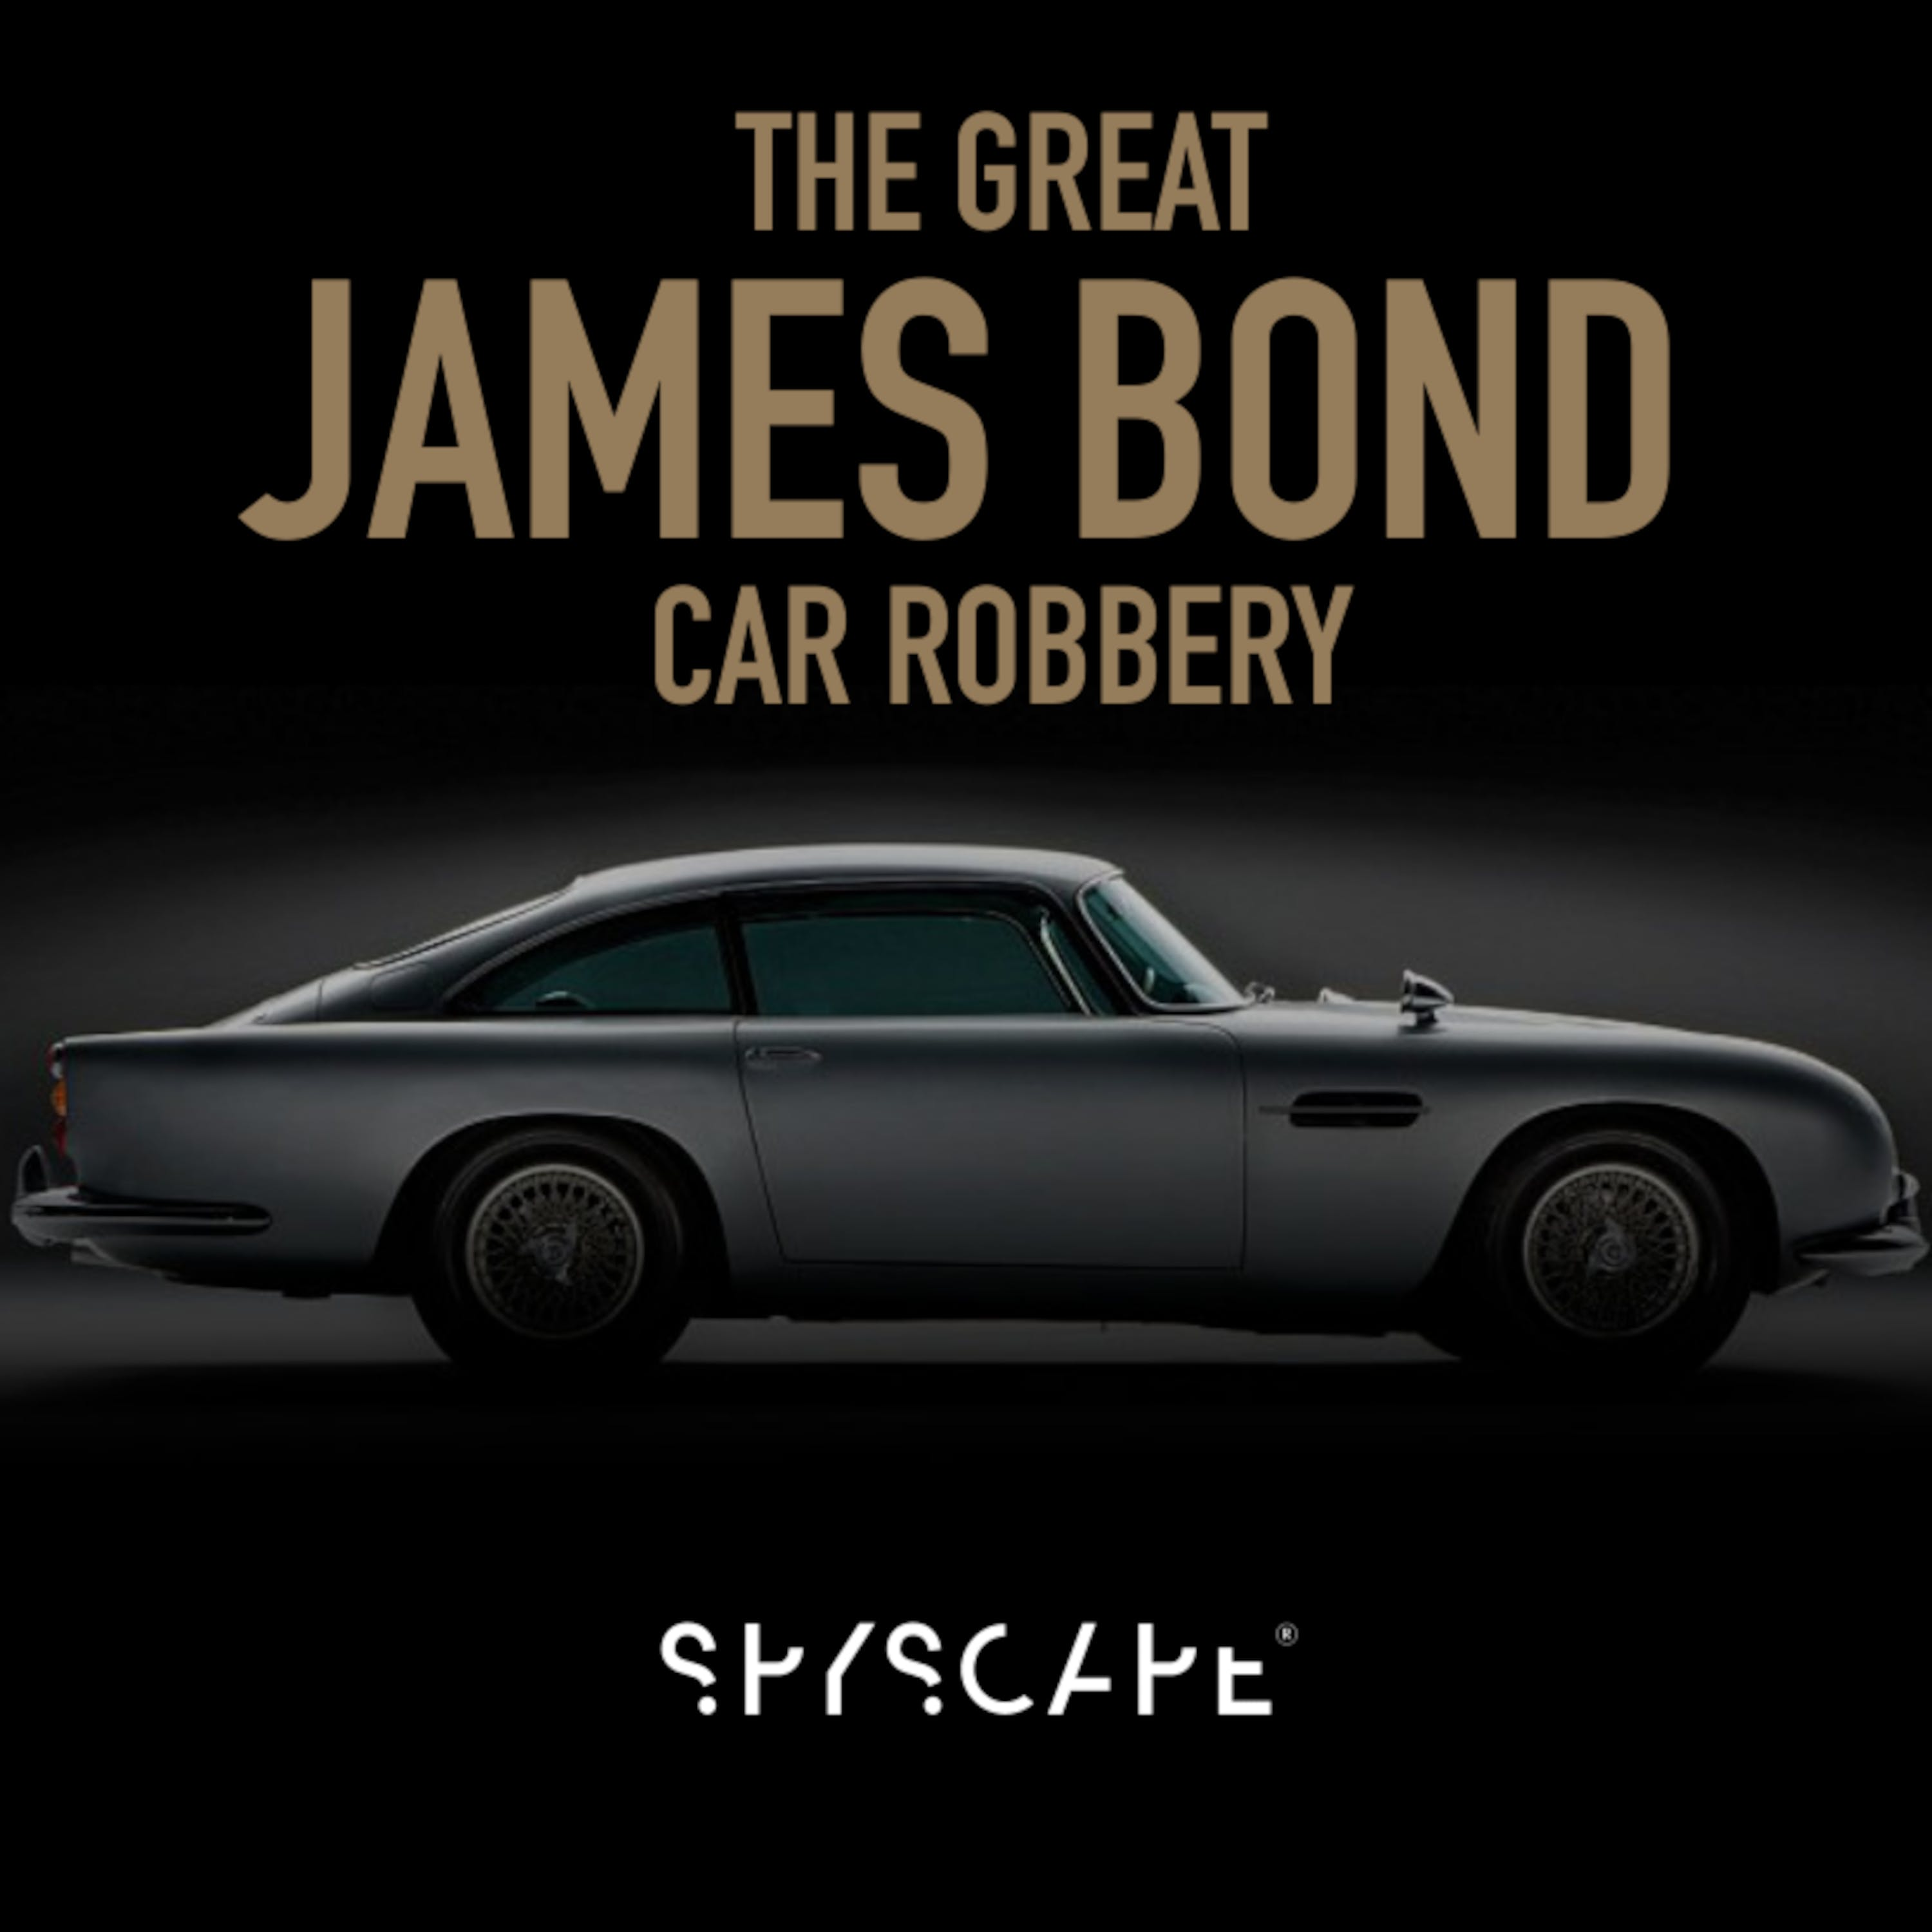 The Great James Bond Car Robbery podcast show image